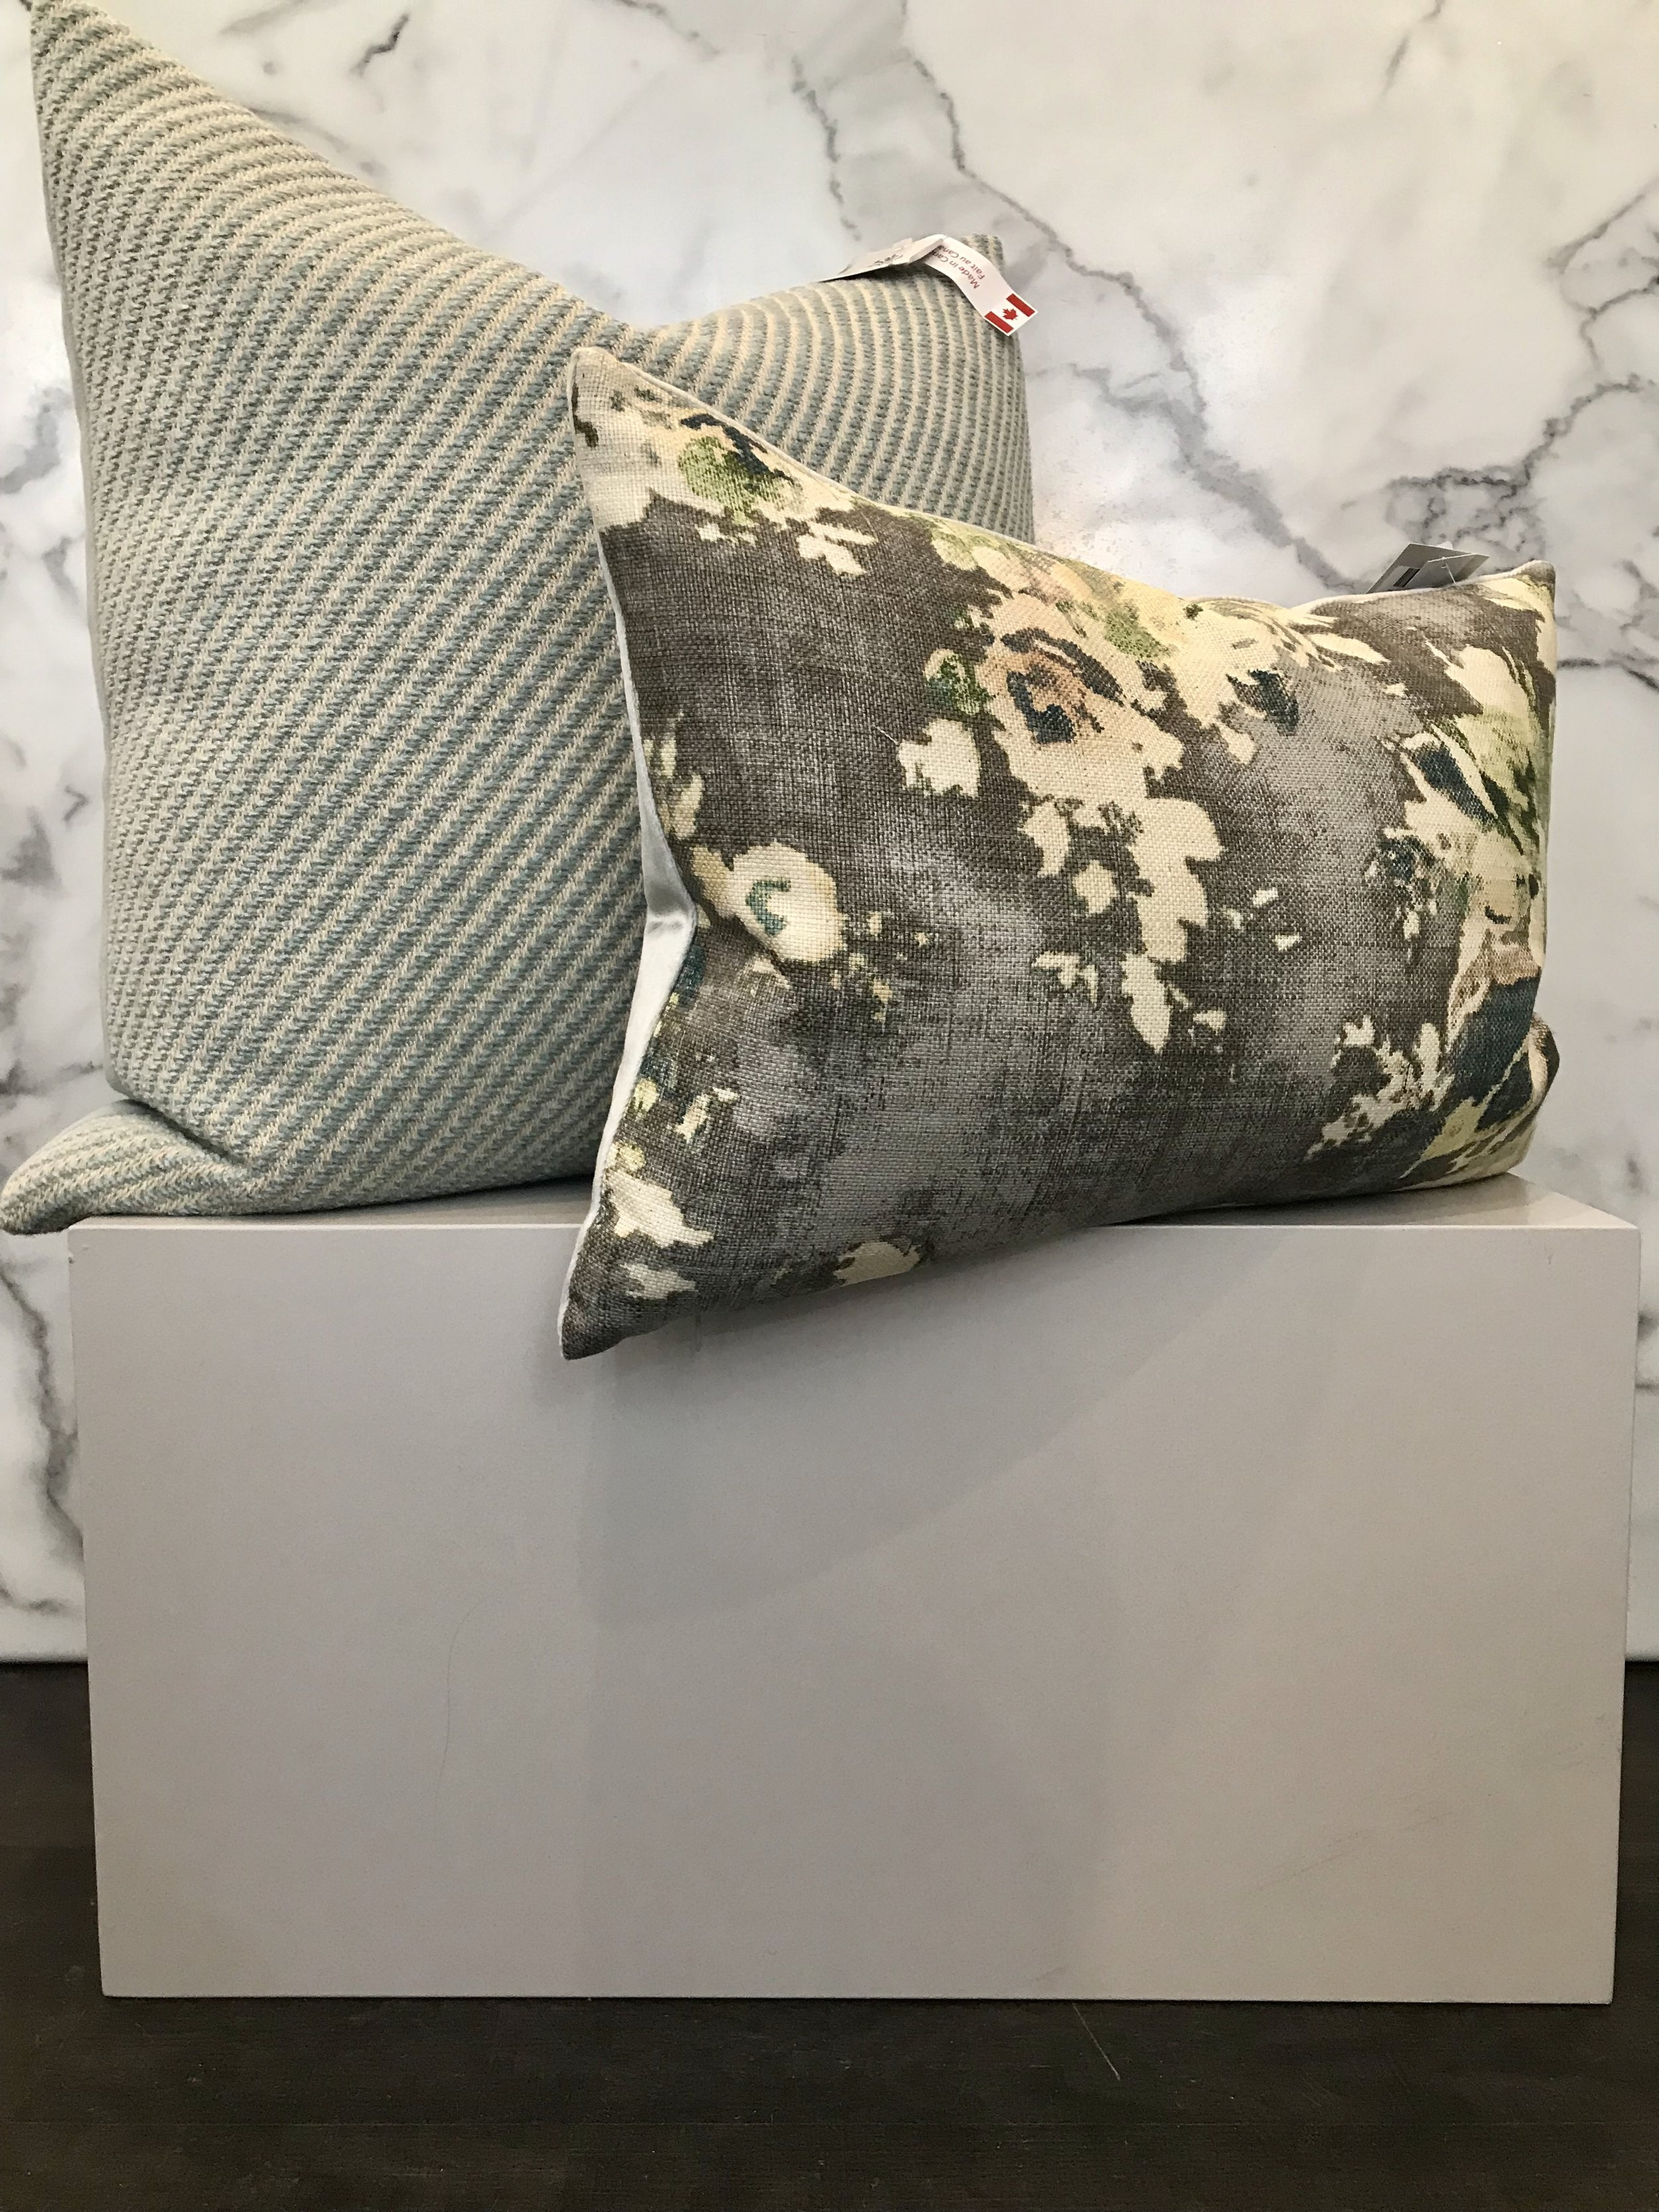 - Green is the perfect colour to add some life and energy to your space. We love subtle greens that lean more towards neutrals in a space and these pillows are the perfect example of this. The stripes and floral balance each other out perfectly.